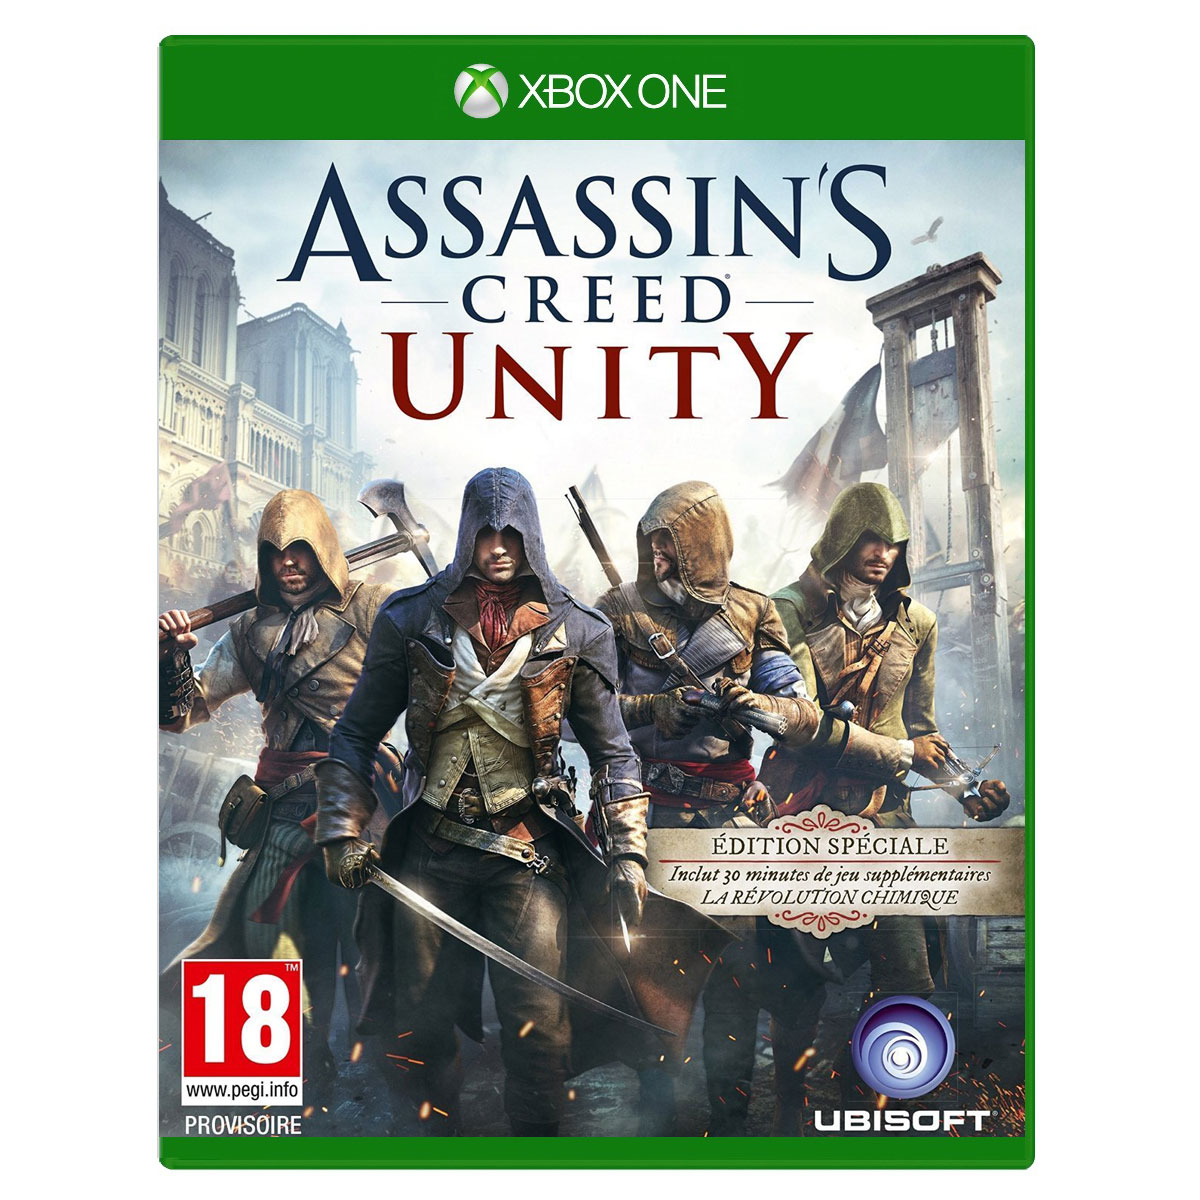 Assassin s creed unity edition spéciale xbox one